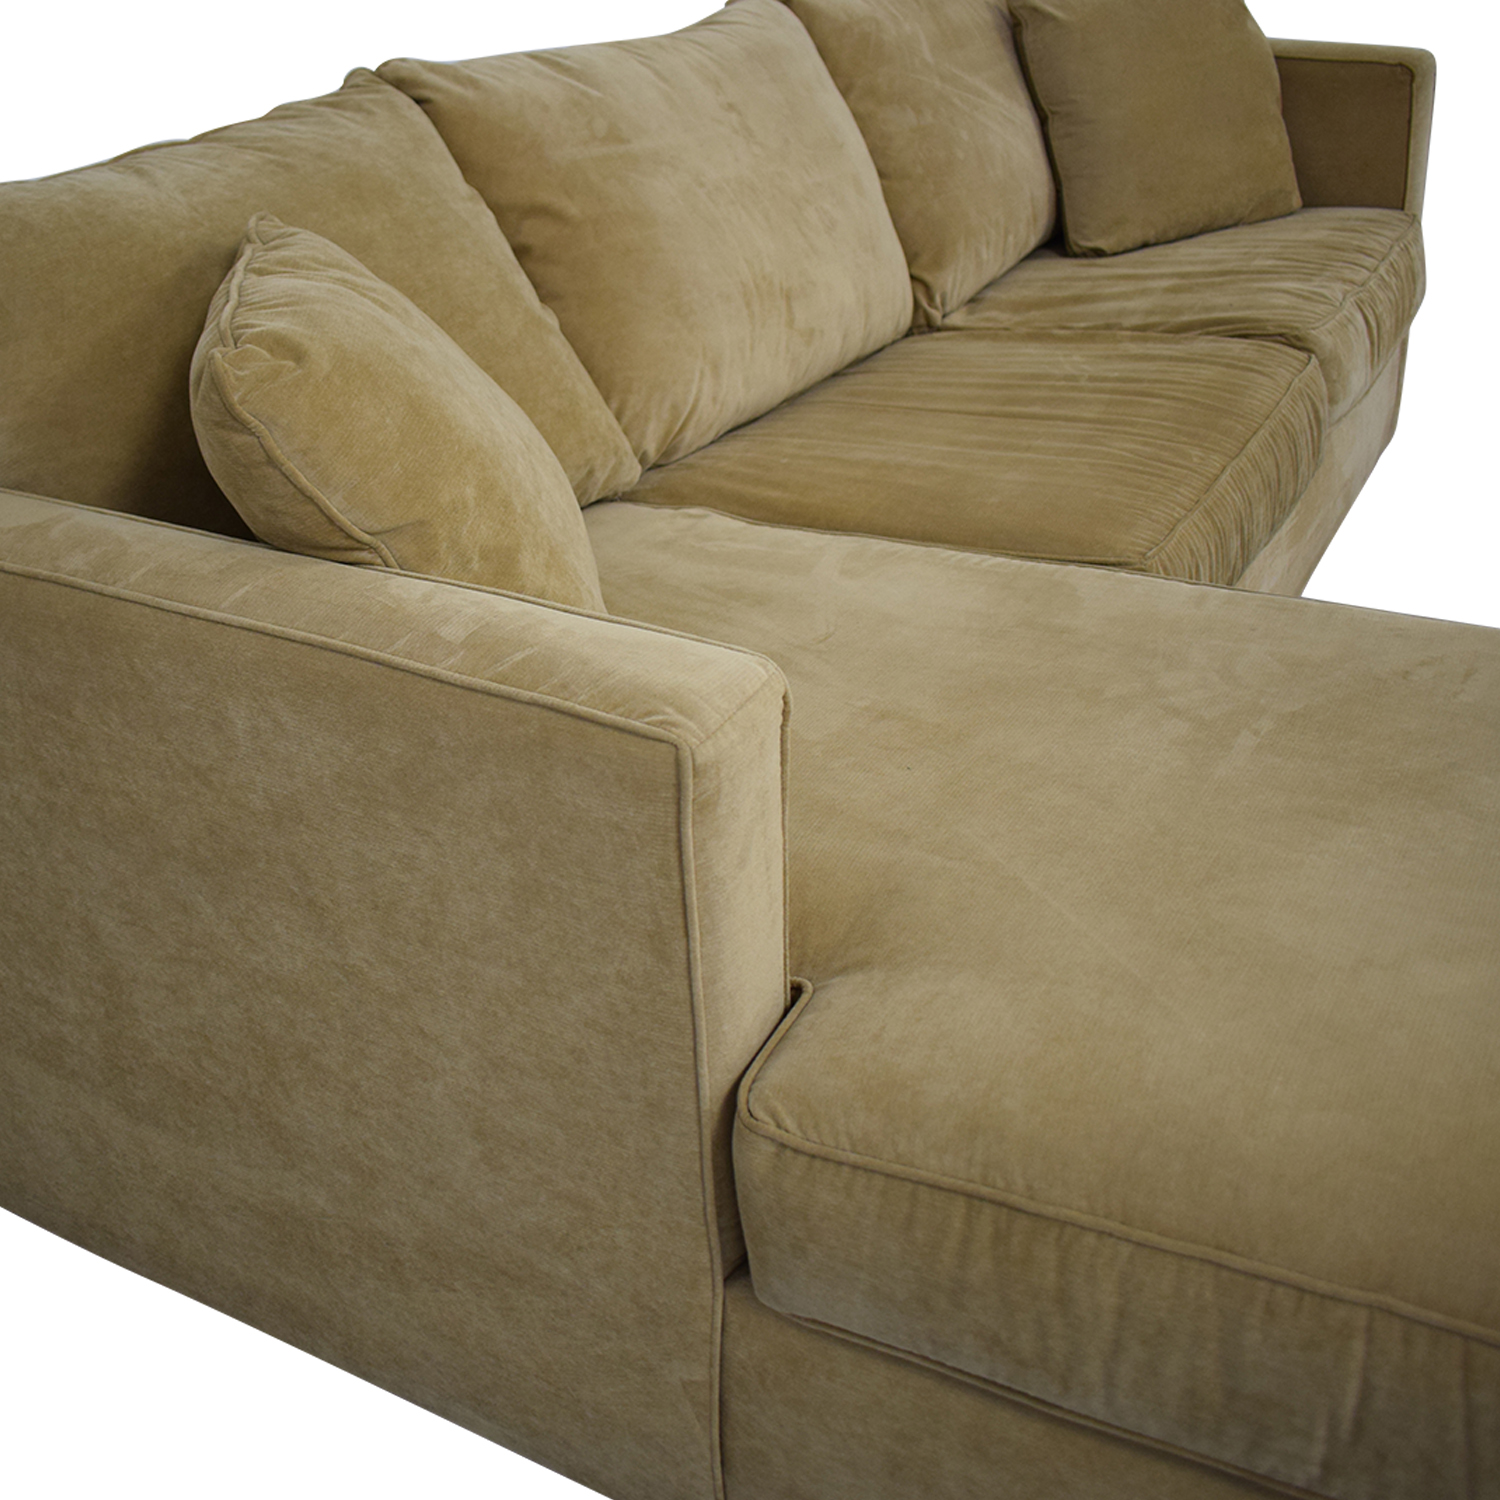 shop Klaussner Chaise Sectional Sleeper Sofa Klaussner